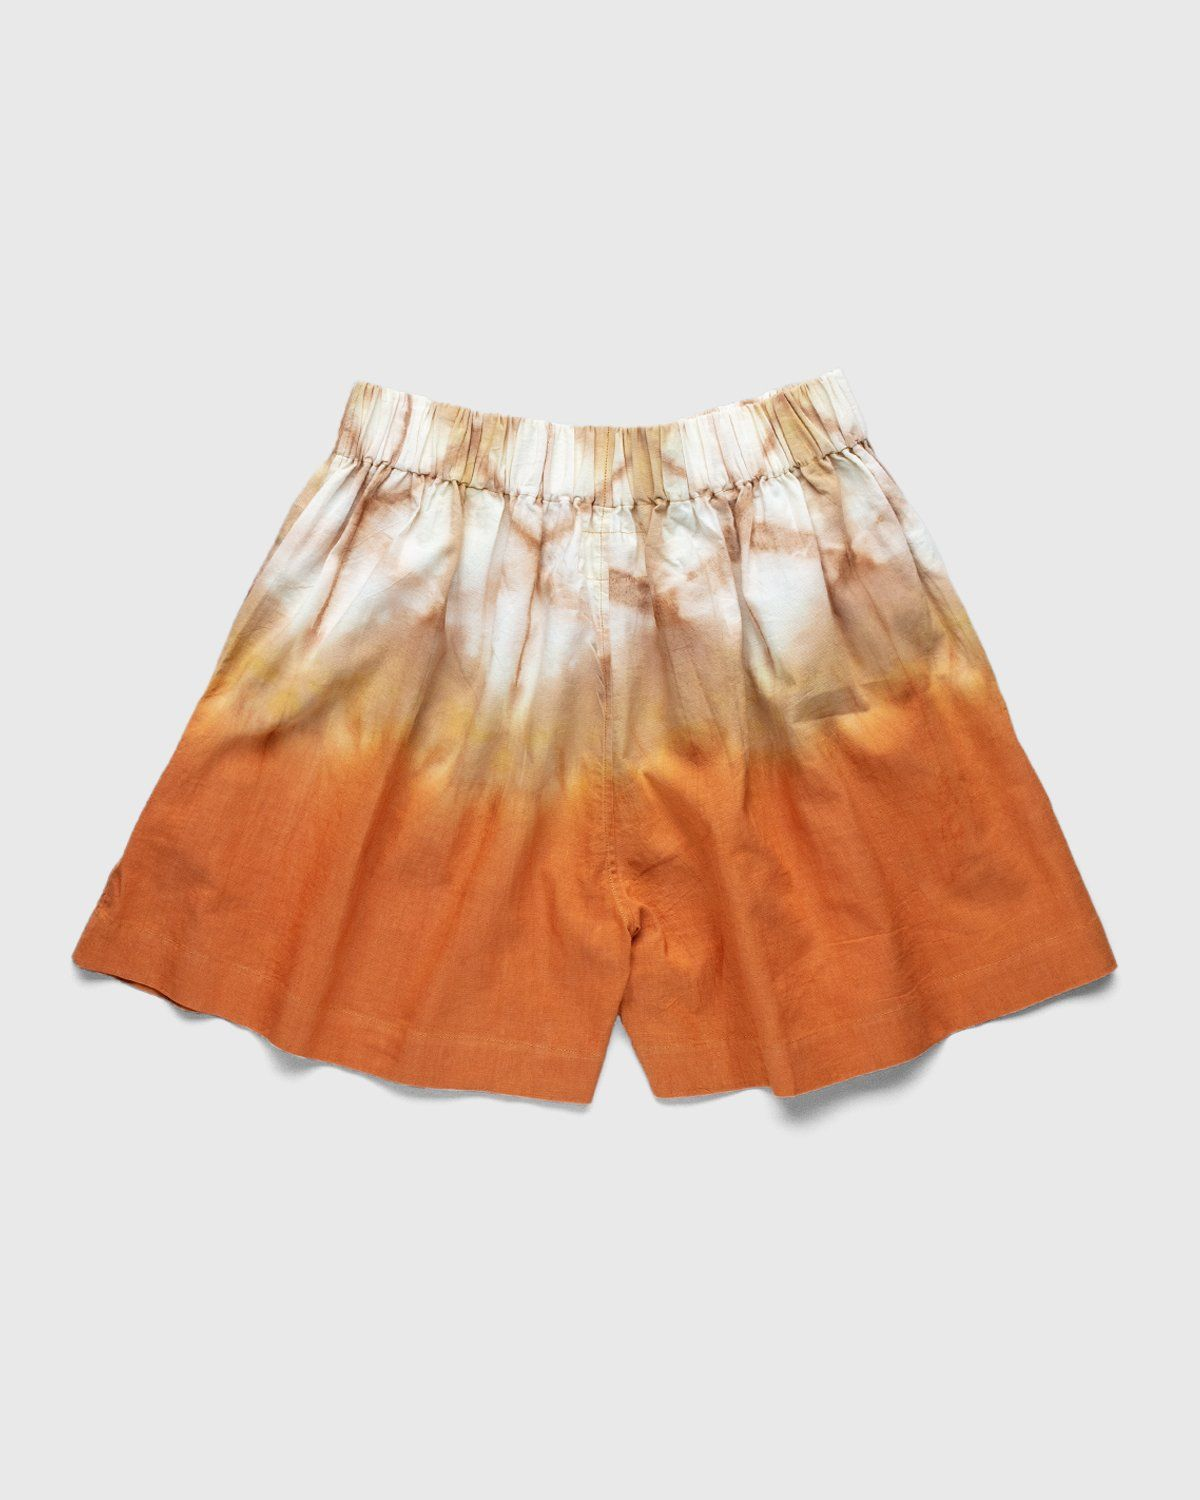 Story mfg. — Yeah Shorts Sun Clamp - Image 2